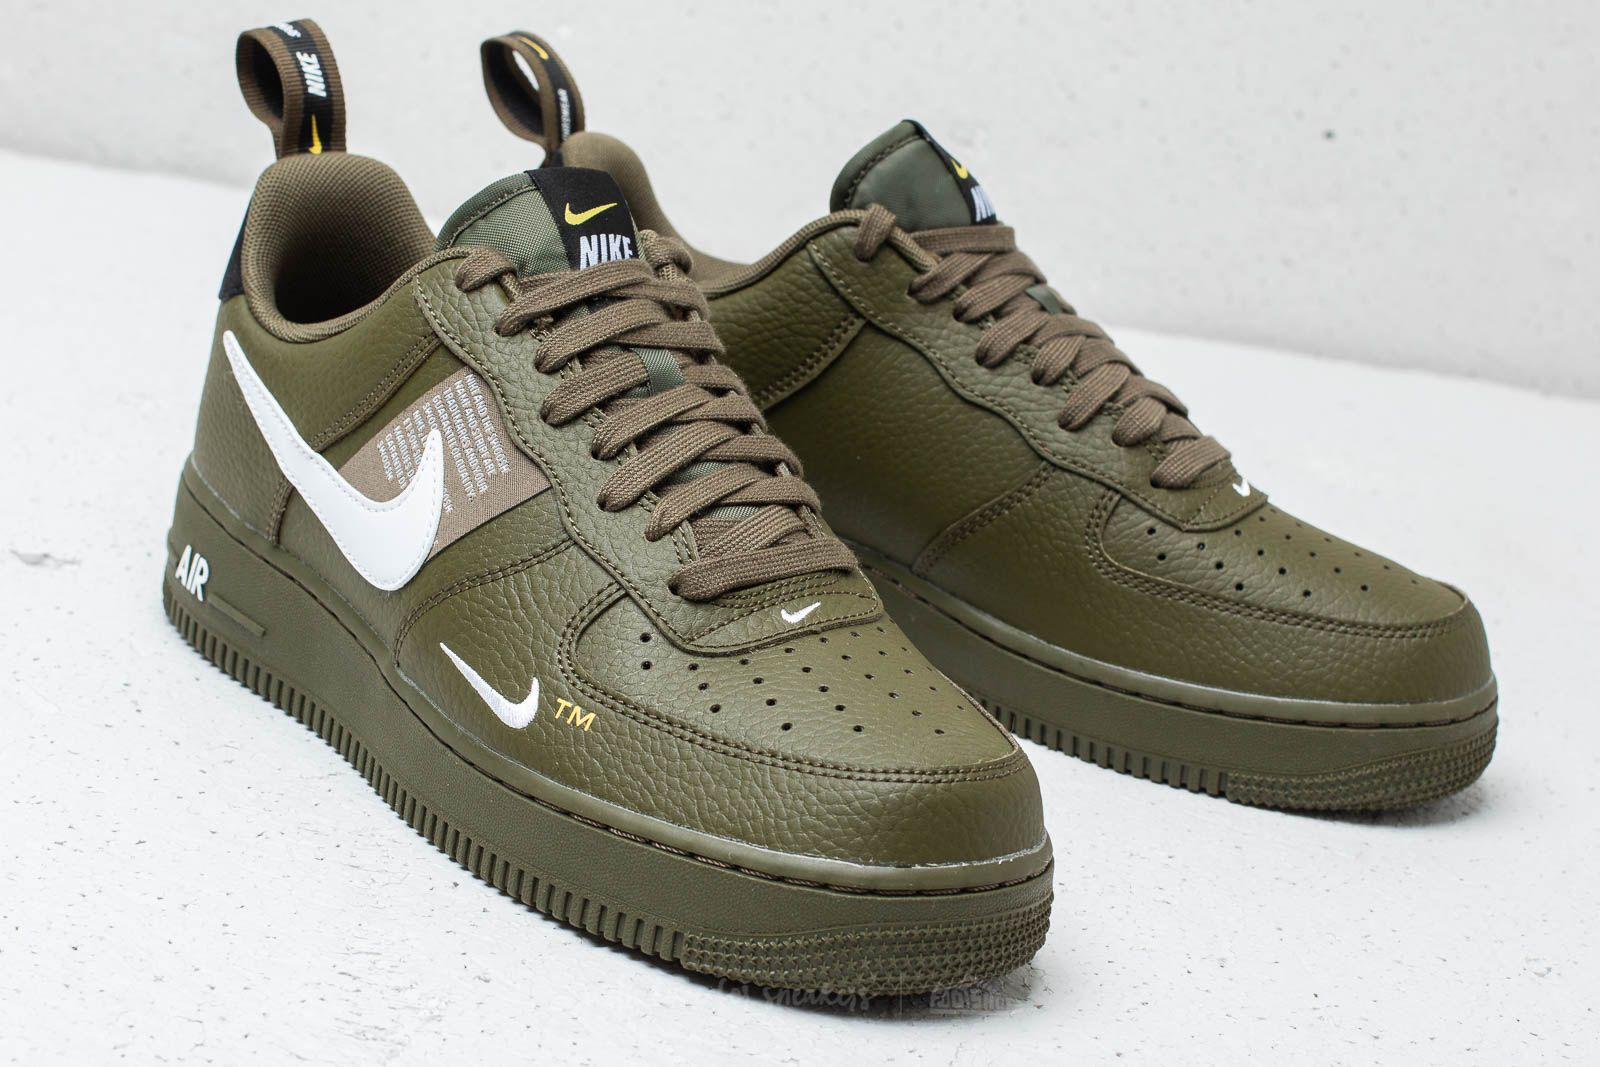 Nike Air Force 1 '07 LV8 Utility Olive Canvas White Black | Footshop